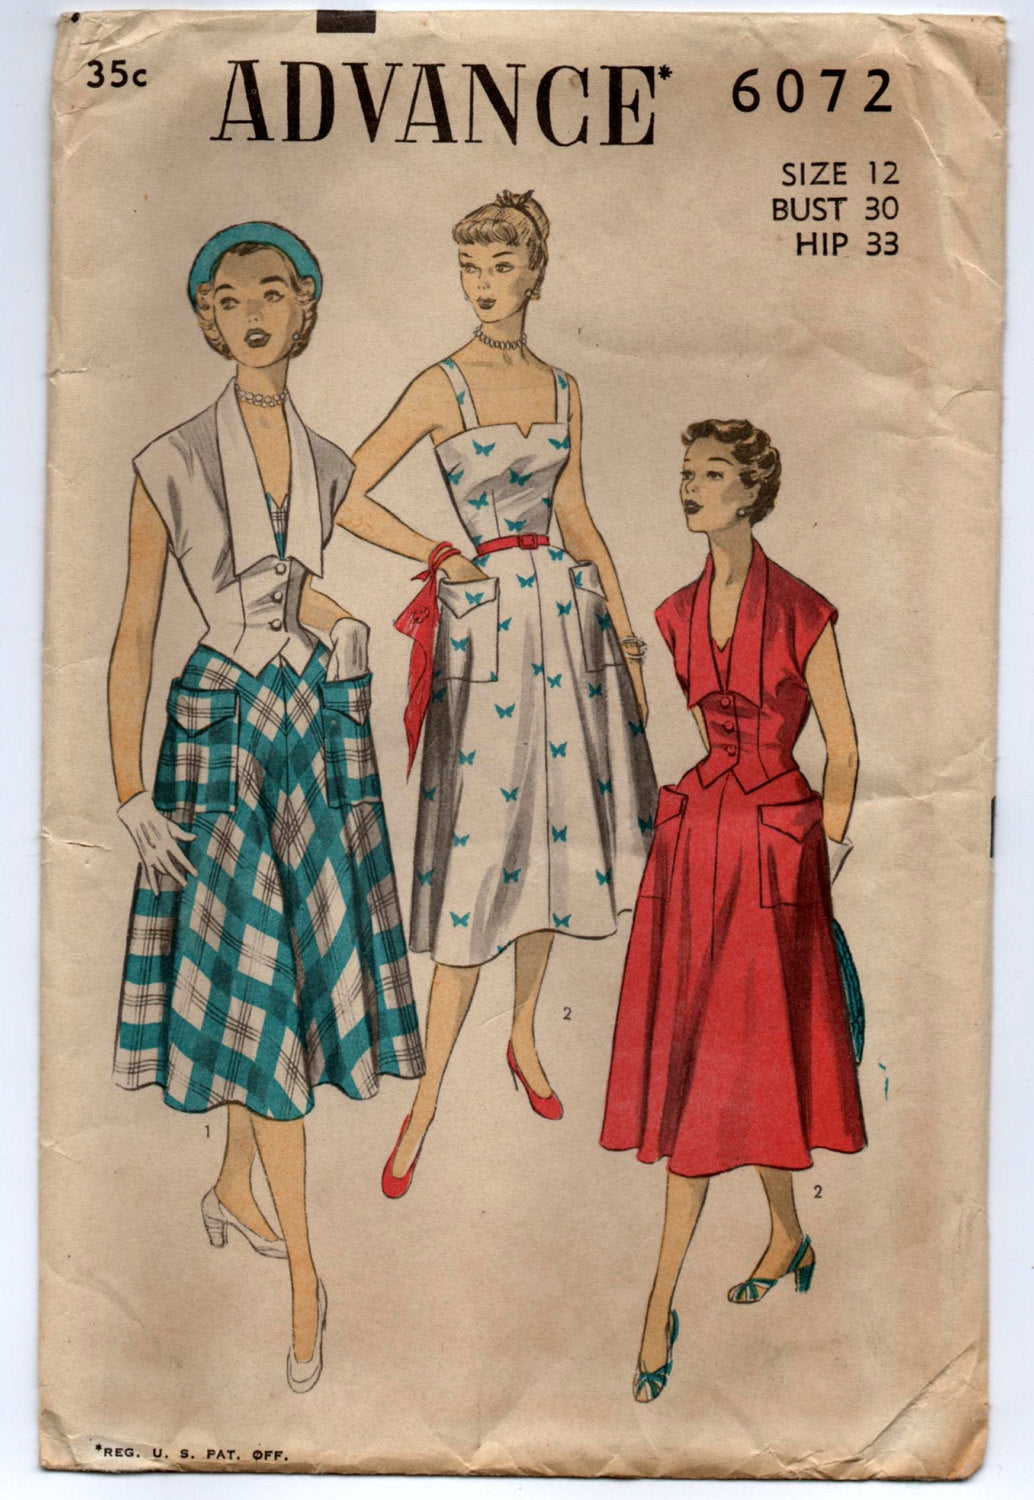 1950's Advance Sundress with Pockets and Jacket Pattern - Bust 30